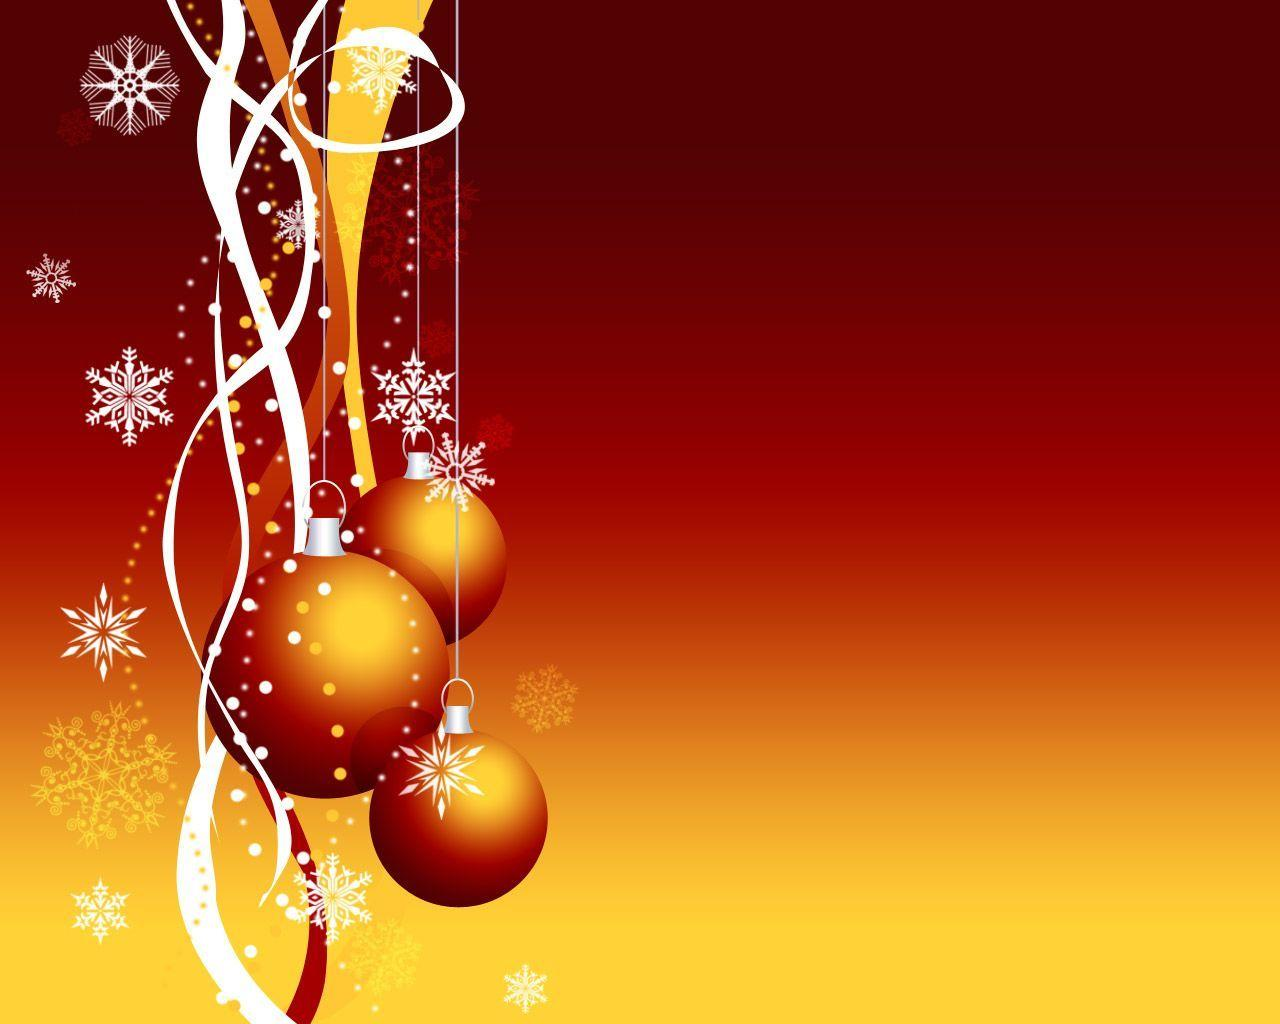 Holiday Backgrounds Free - Wallpaper Cave